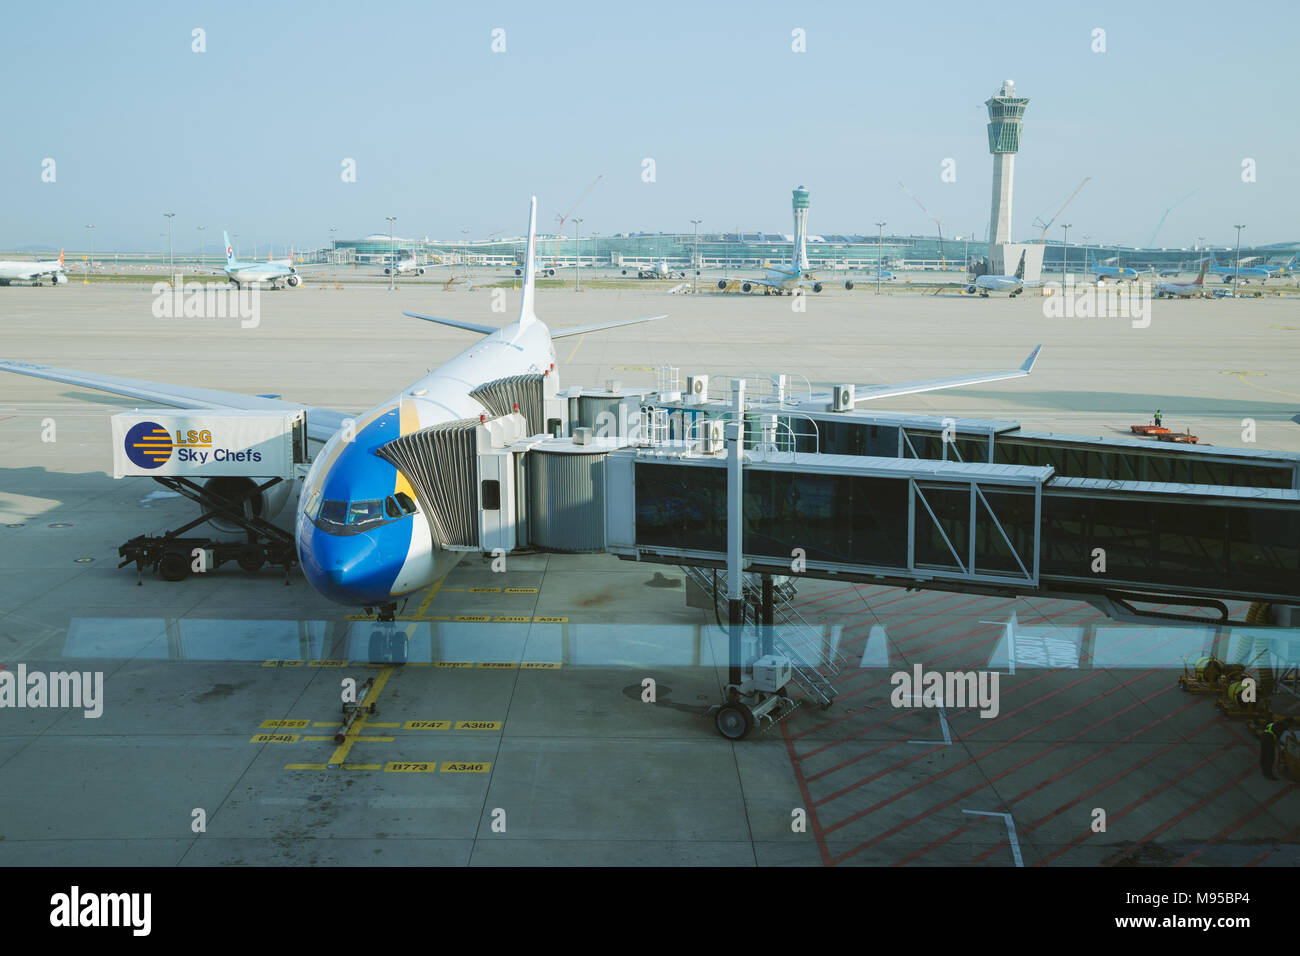 Incheon, Korea - August 7, 2016 : The plane at the airport Stock Photo